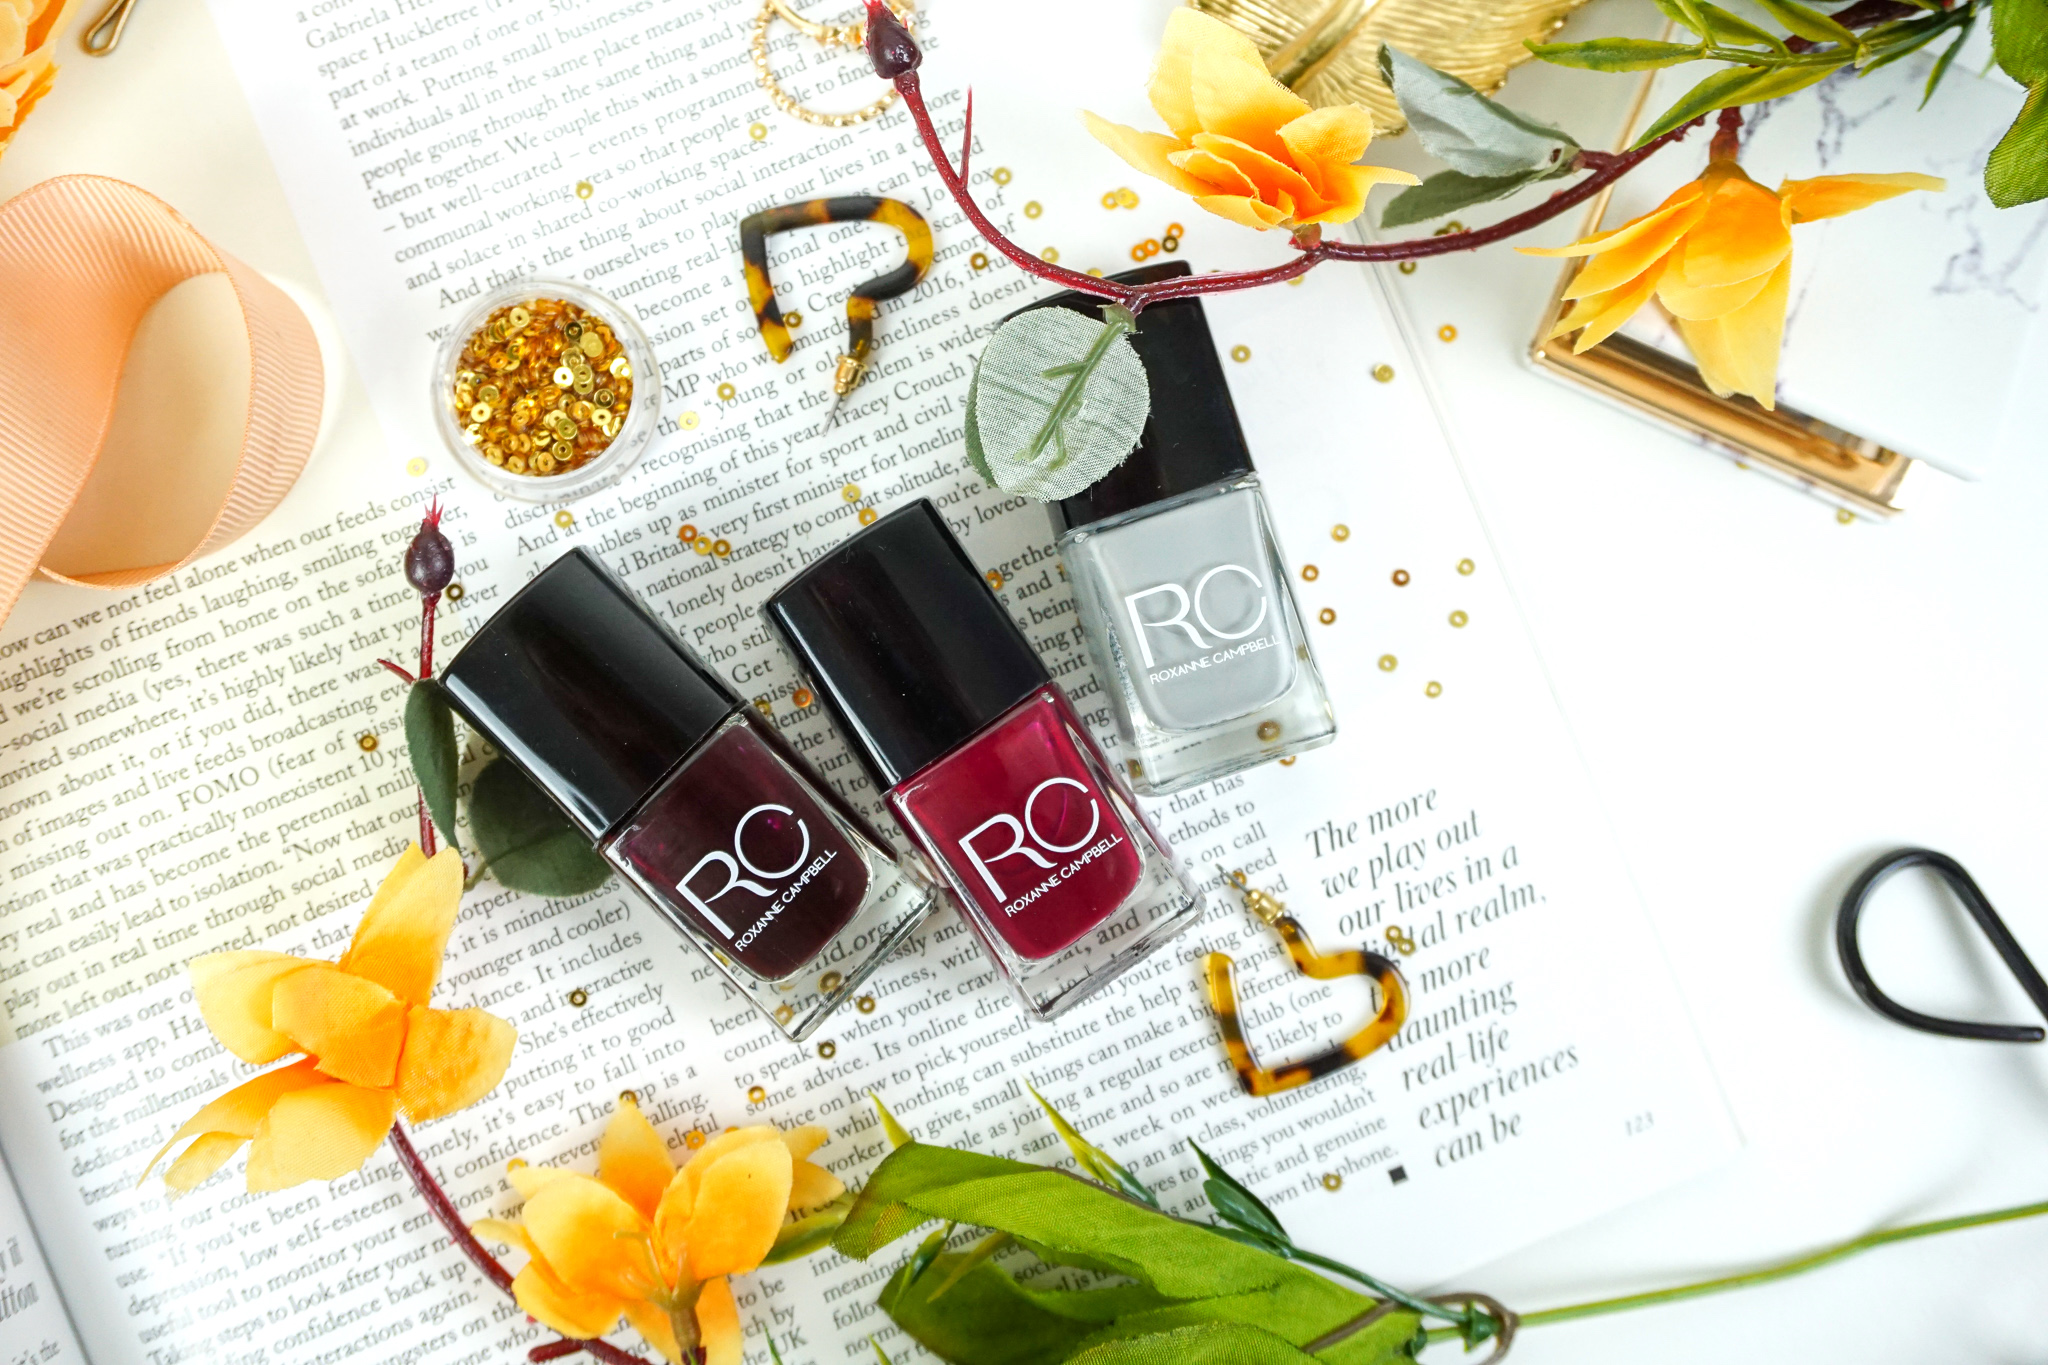 Roxanne Campbell Luxury Nail Polish - I couldn't resist trying these nail shades perfect for Autumn and Winter…